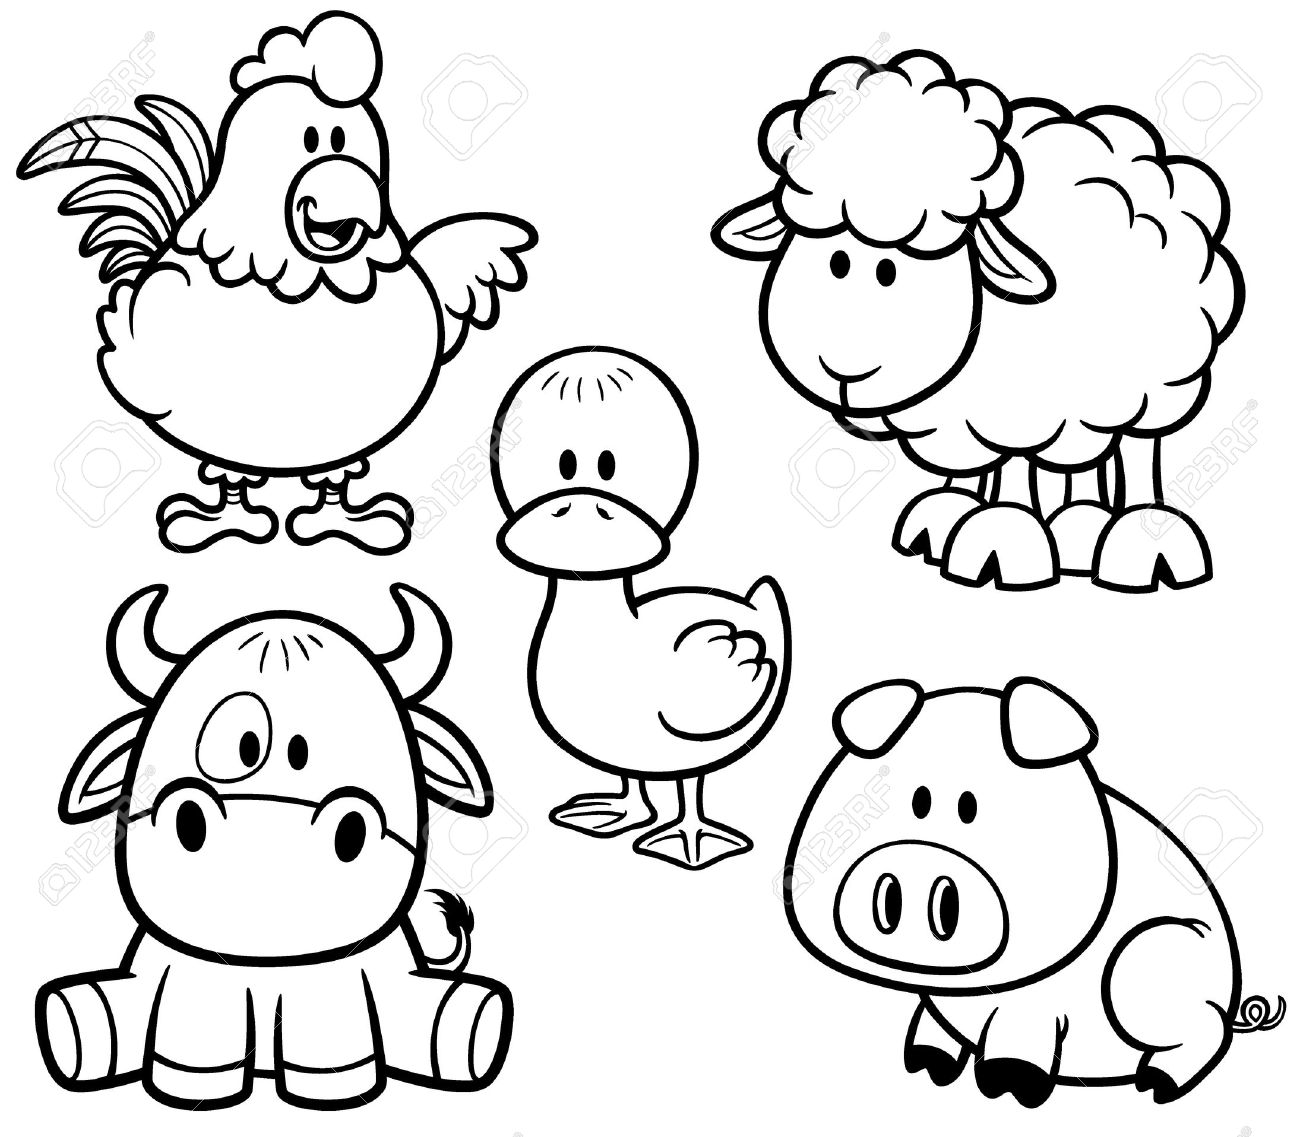 animal babies coloring pages cute baby farm animal coloring pages best coloring pages animal babies coloring pages